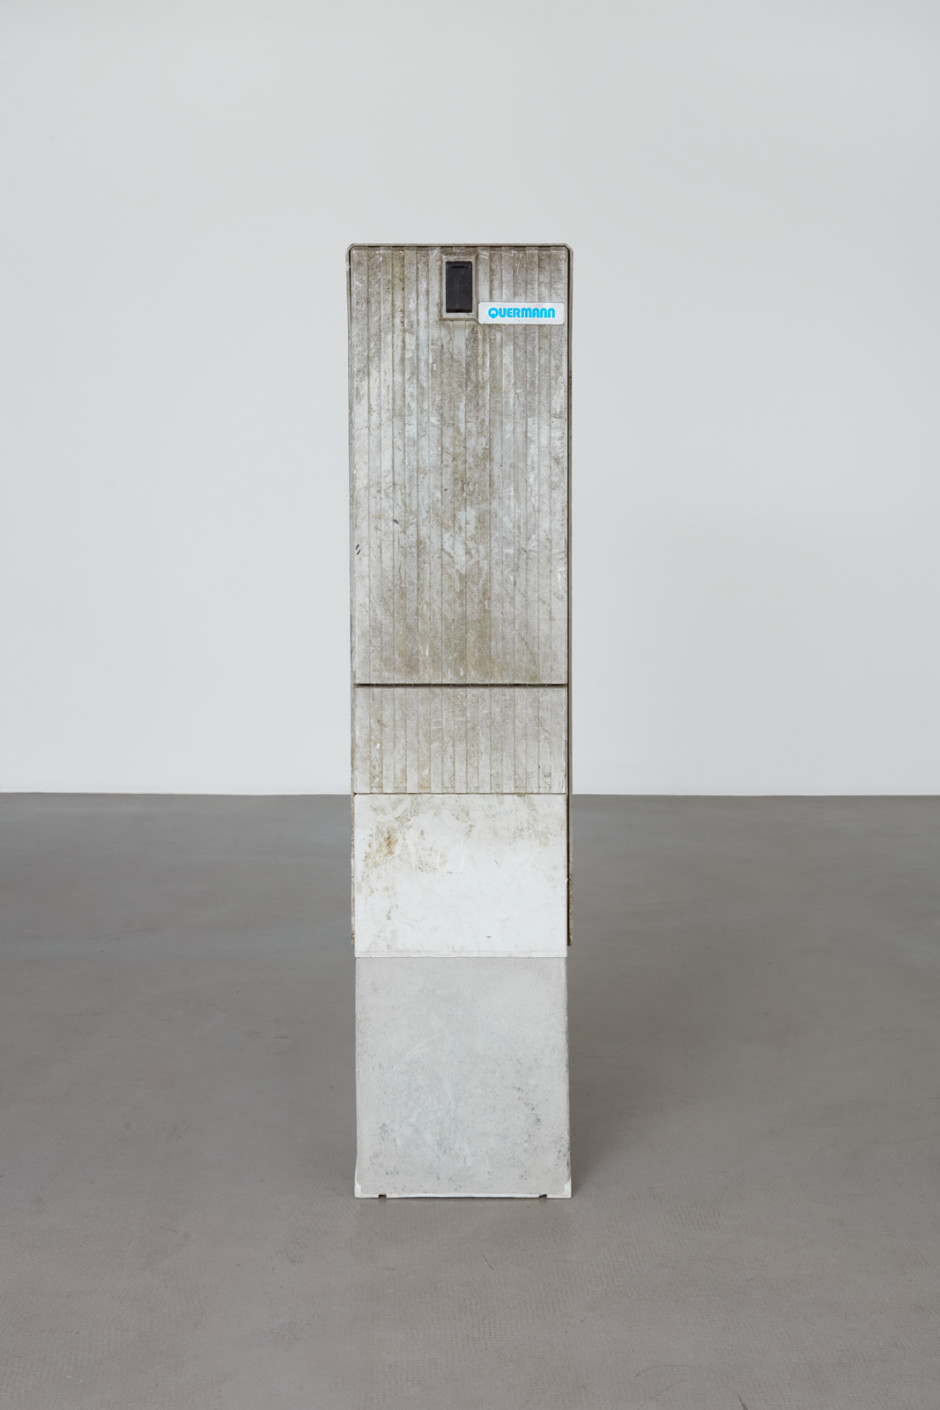 Klara Liden  Quermann, 2020  junction box  145 x 32 x 22 cm / 57 ⅛ x 12 ⅝ x 8 ⅝ in